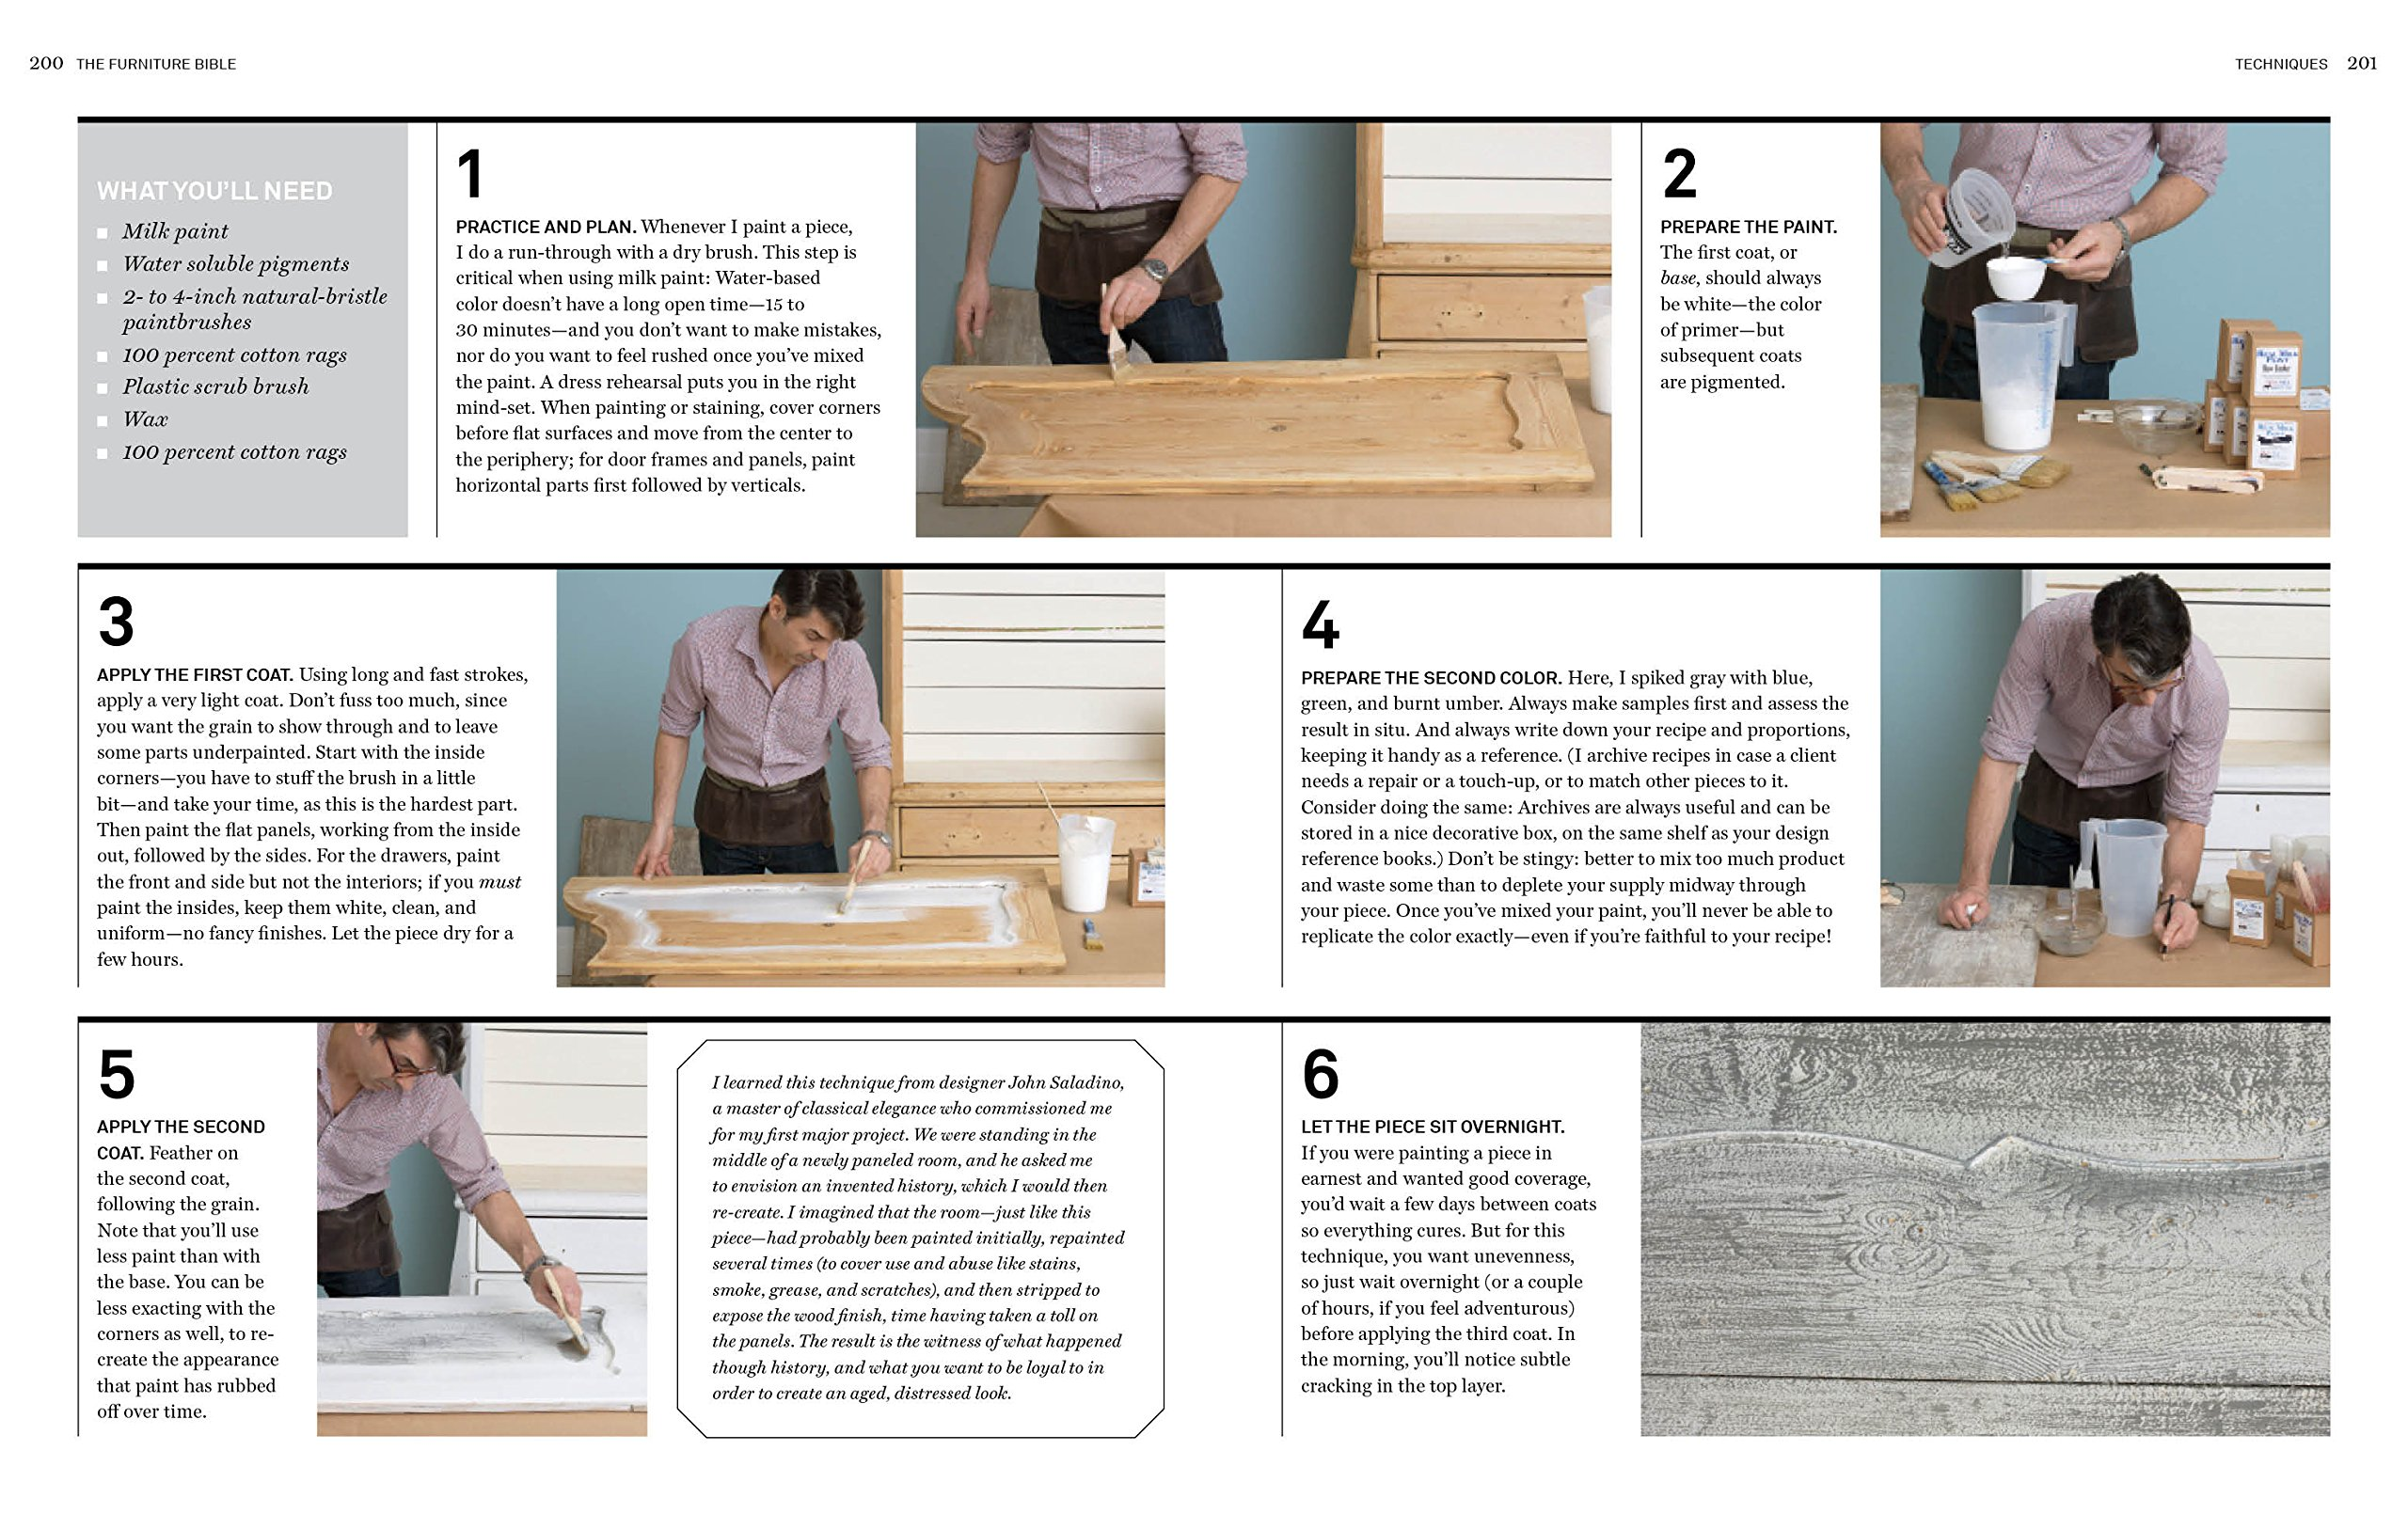 The Furniture Bible: Everything You Need to Know to Identify, Restore & Care for Furniture by Workman Publishing (Image #1)